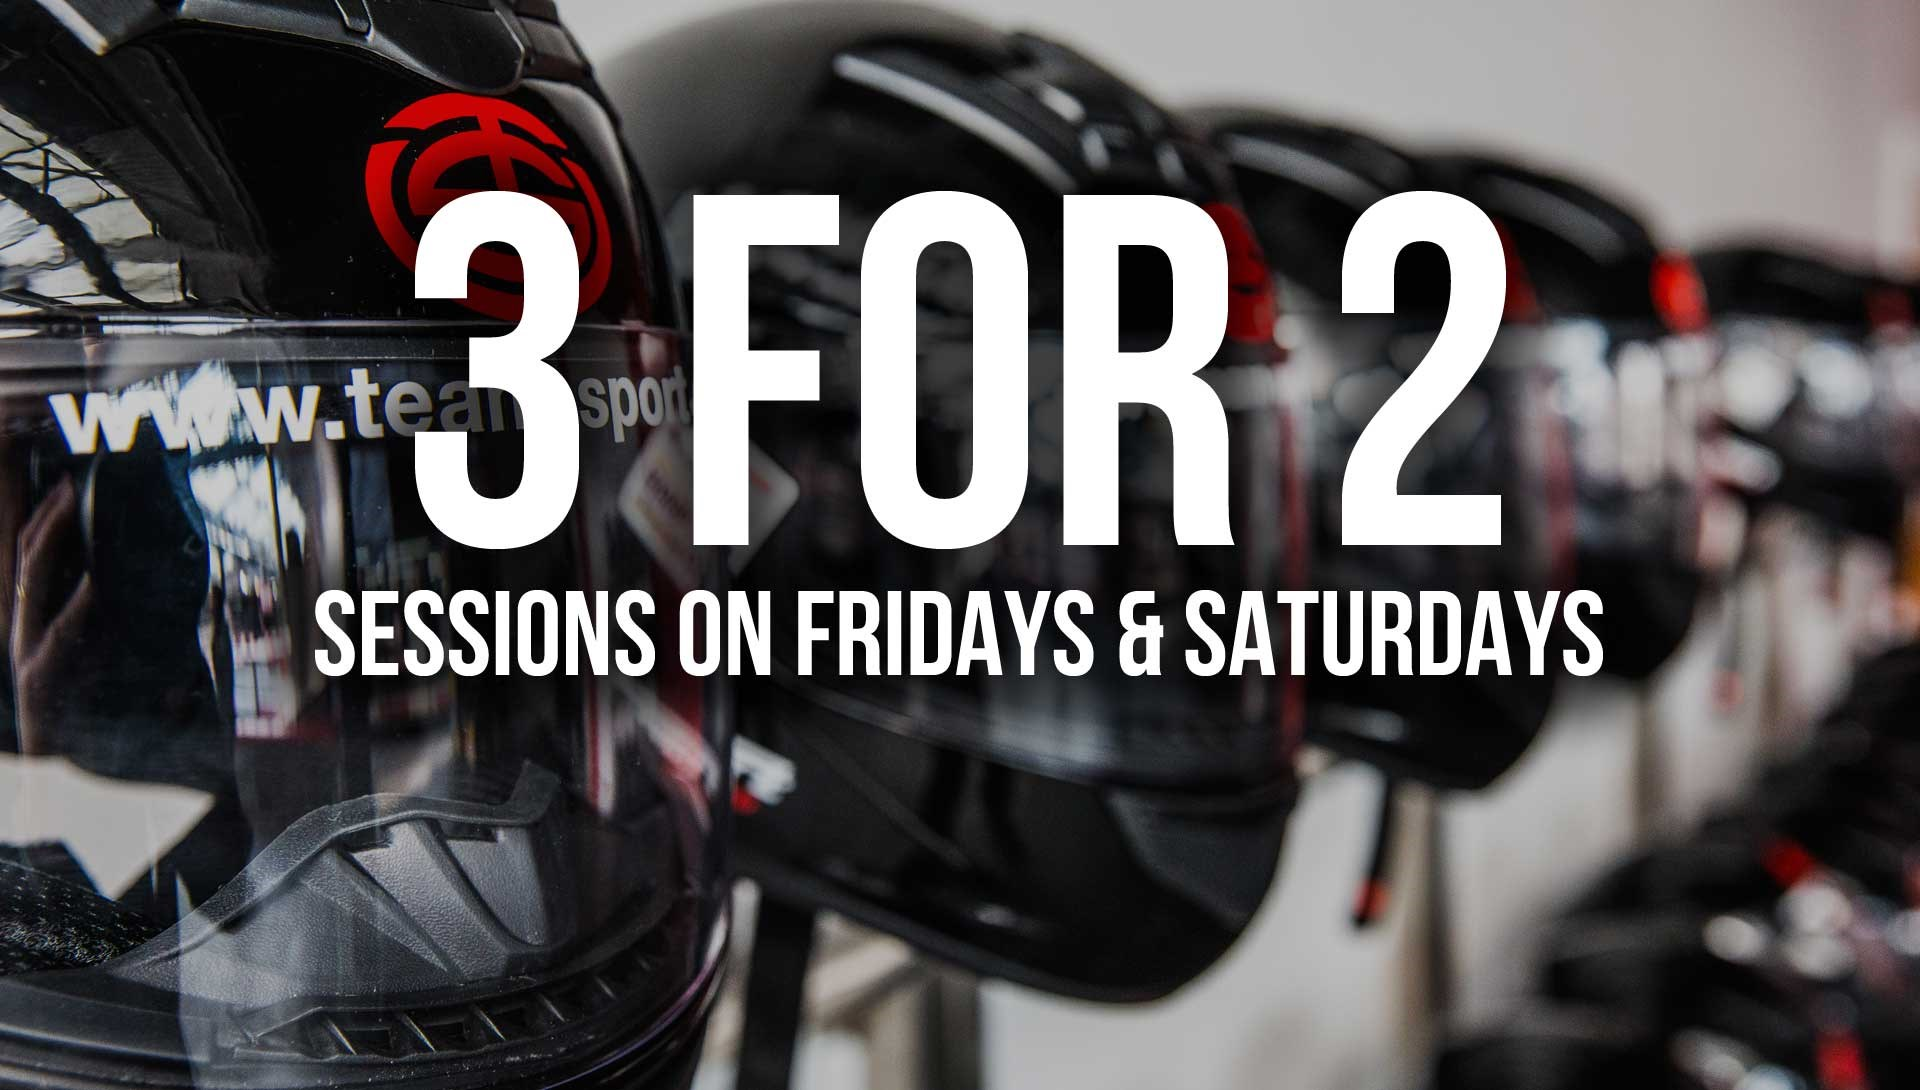 GO KARTING OFFERS - 3 FOR 2